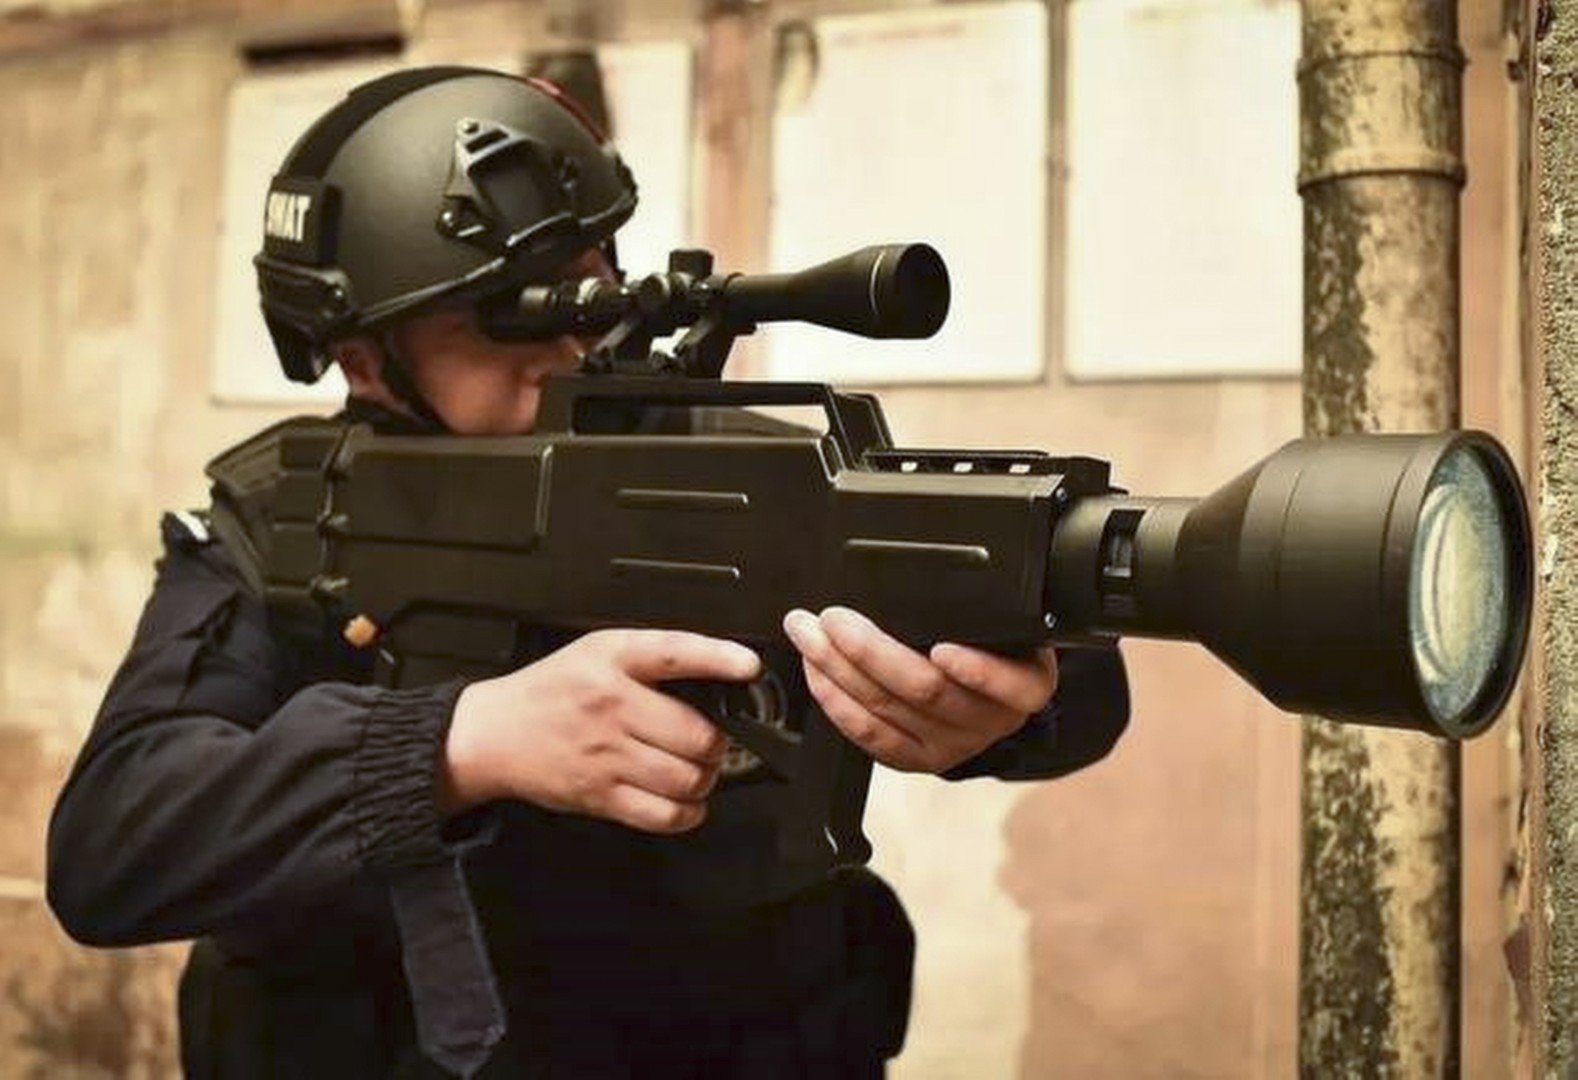 China brings Star Wars to life with 'laser AK-47' that can